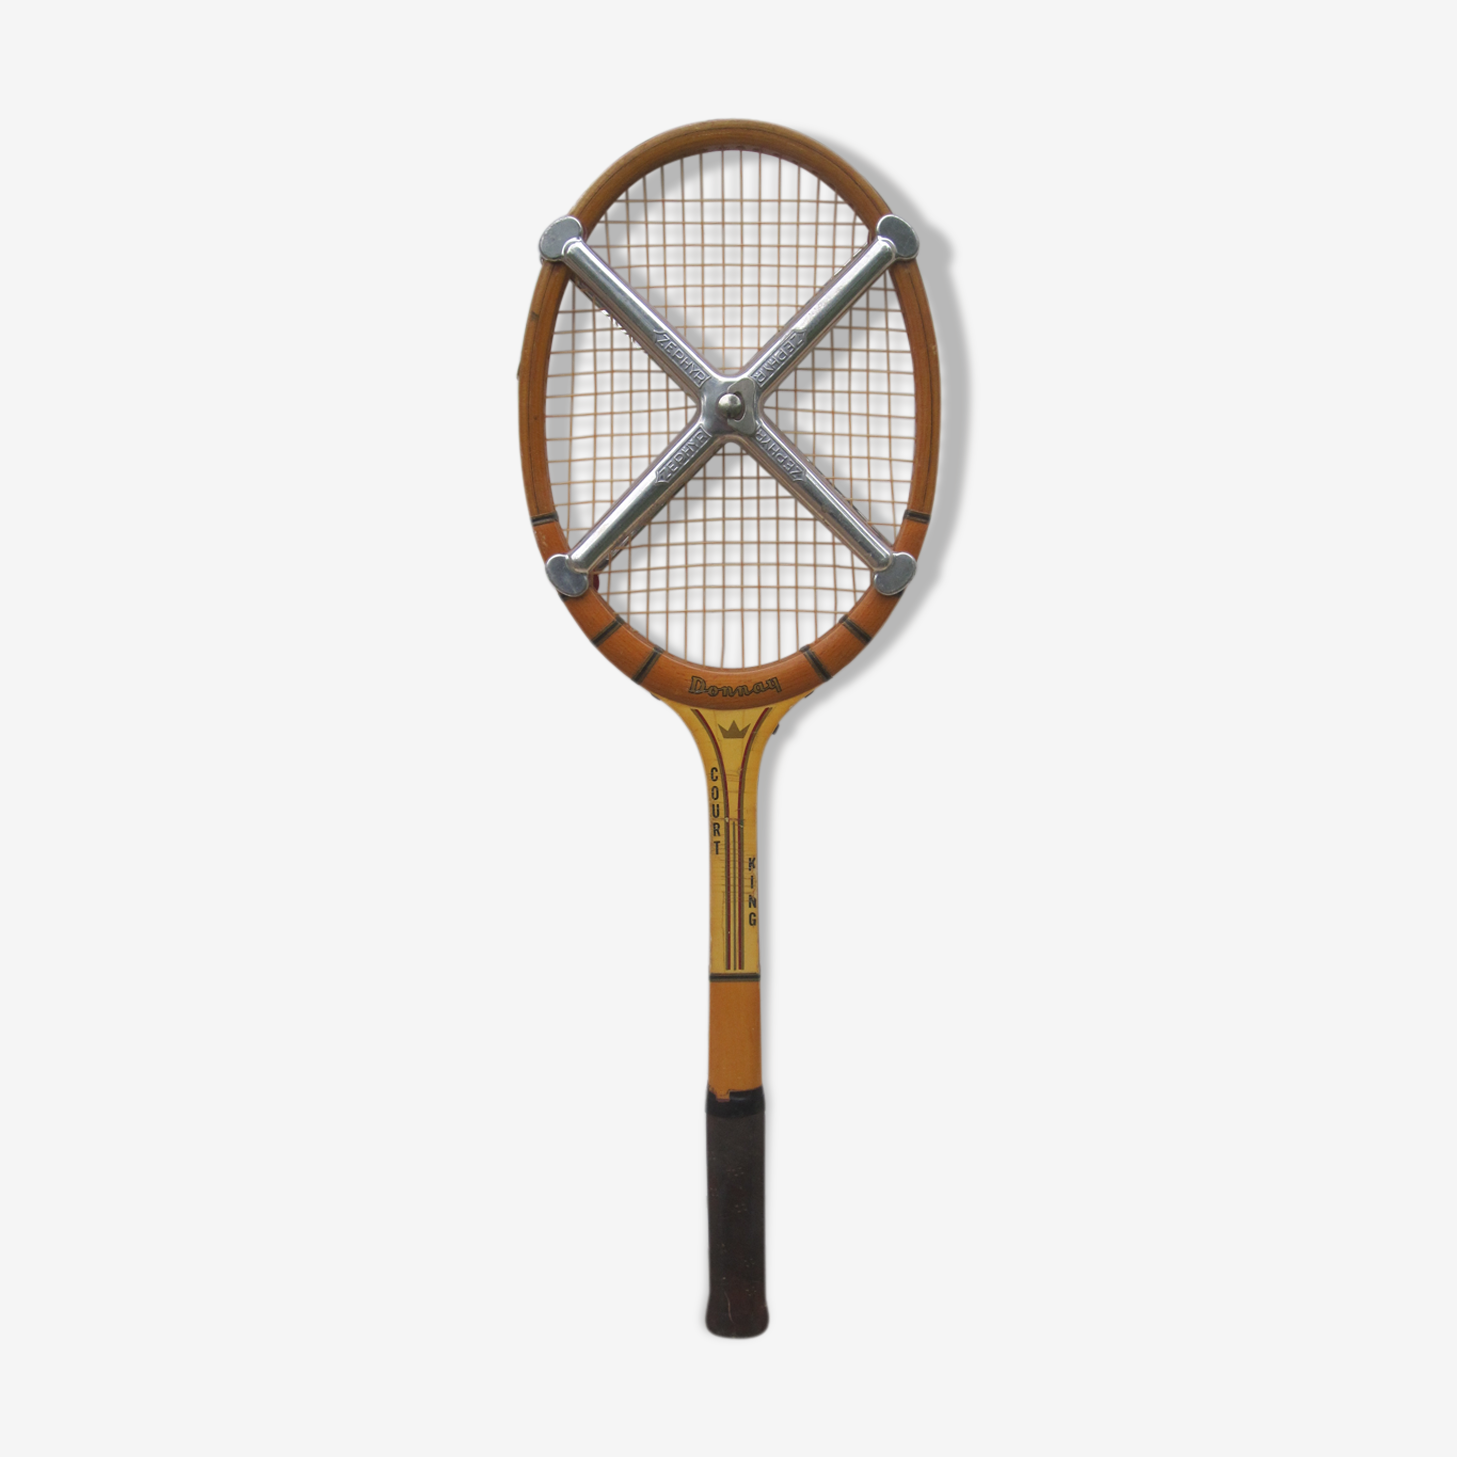 Donnay vintage tennis racket